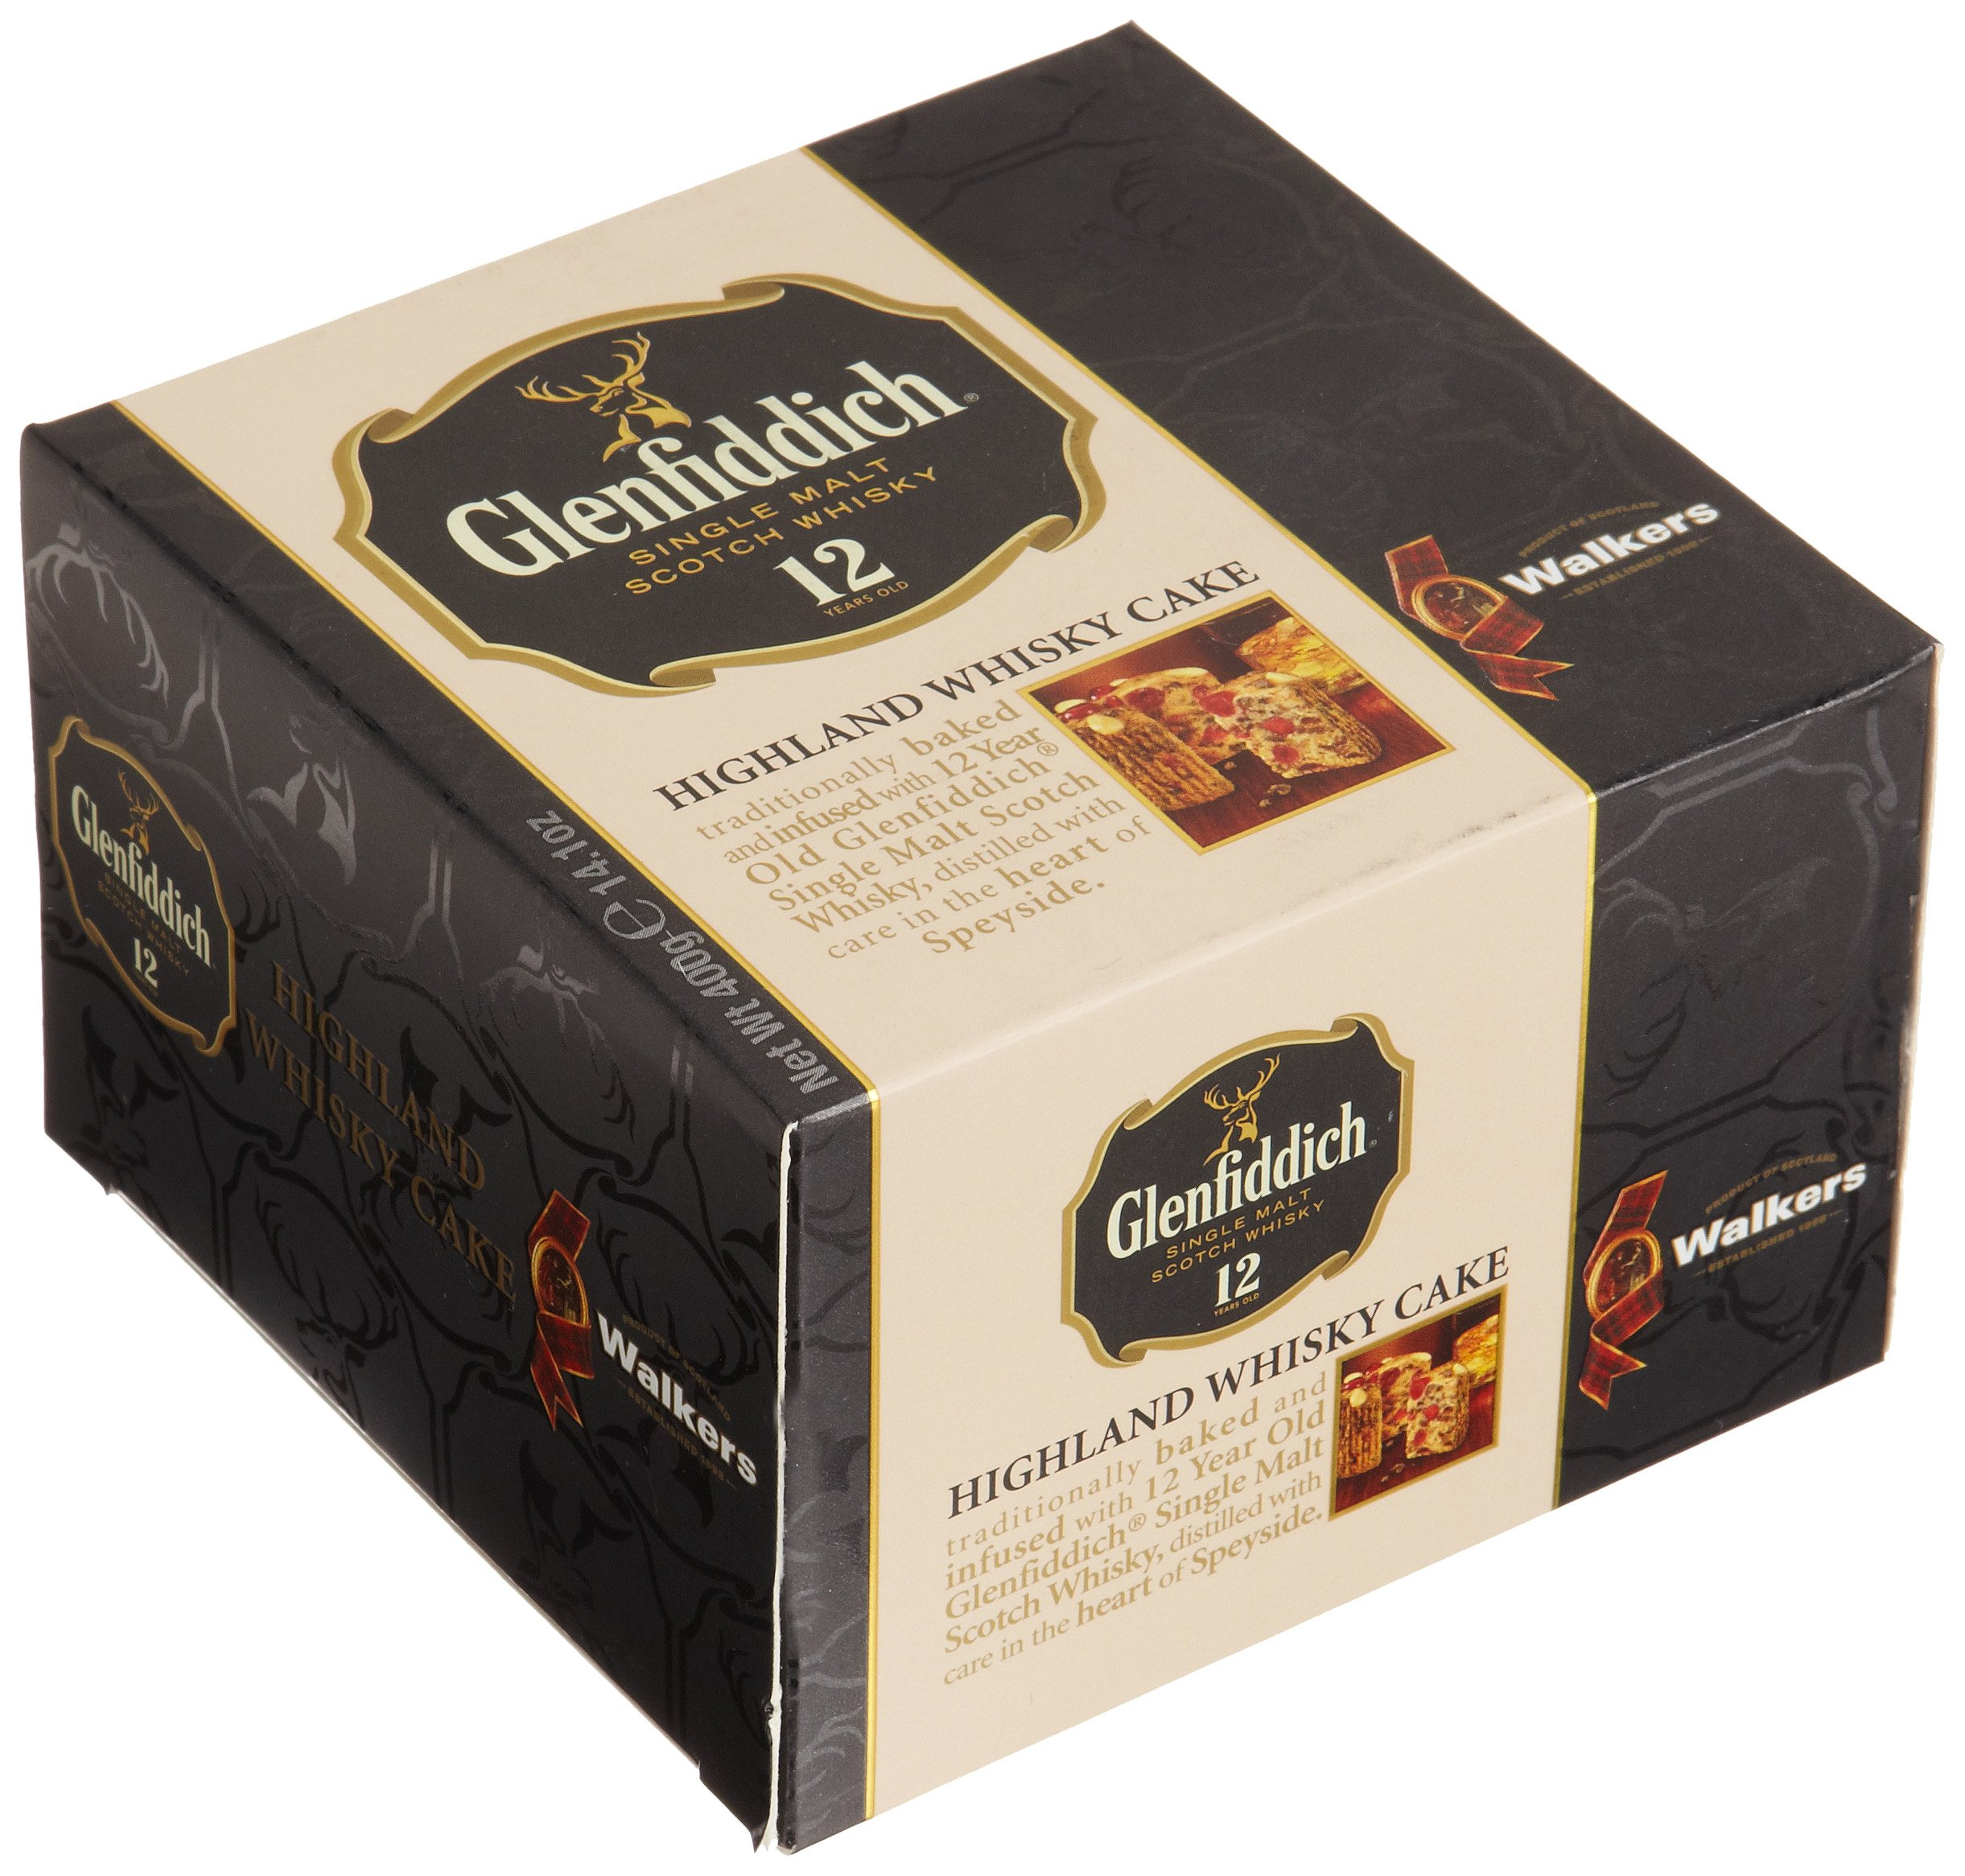 Walkers Shortbread Glenfiddich Highland Whisky Cake, 14.1 Ounce Box Traditional Scottish Fruit Cake with Glenfiddich Malt Whisky, Cherries, Sultanas by Walkers Shortbread (Image #2)